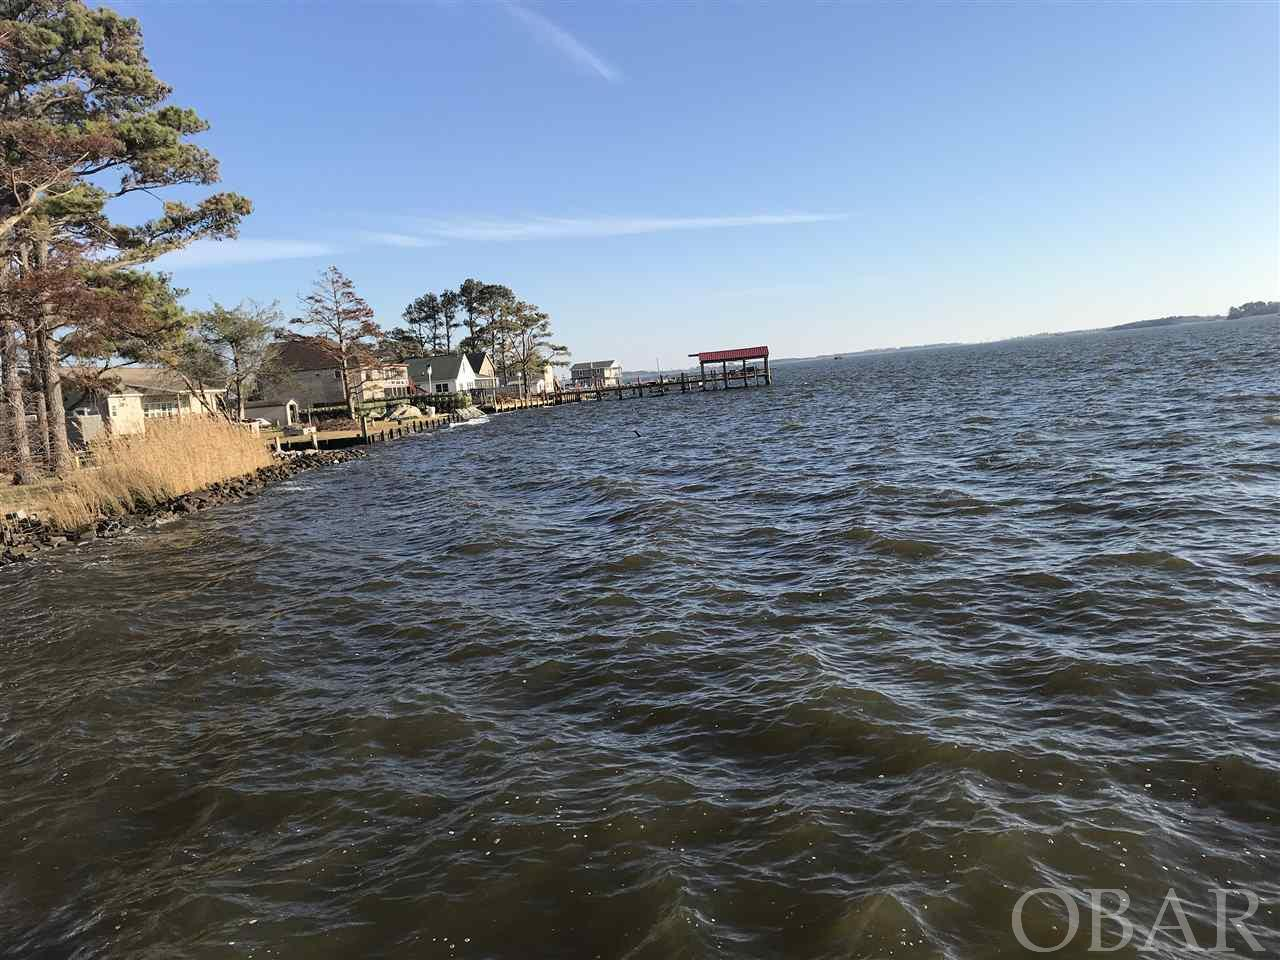 105 Baggy Davis Lane, Currituck, NC 27929, ,Lots/land,For sale,Baggy Davis Lane,109738